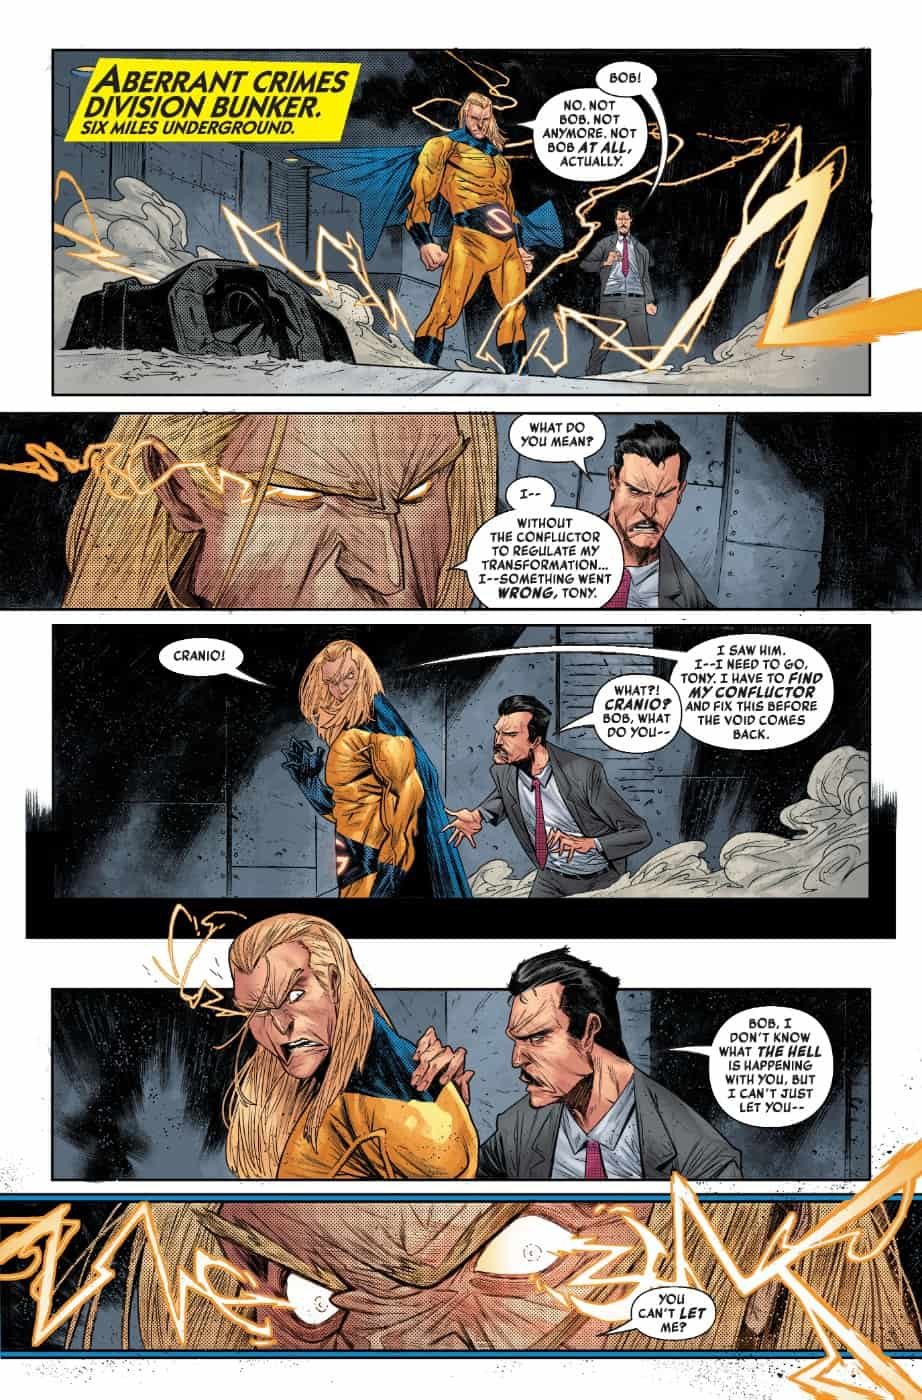 THE SENTRY #4 page 5